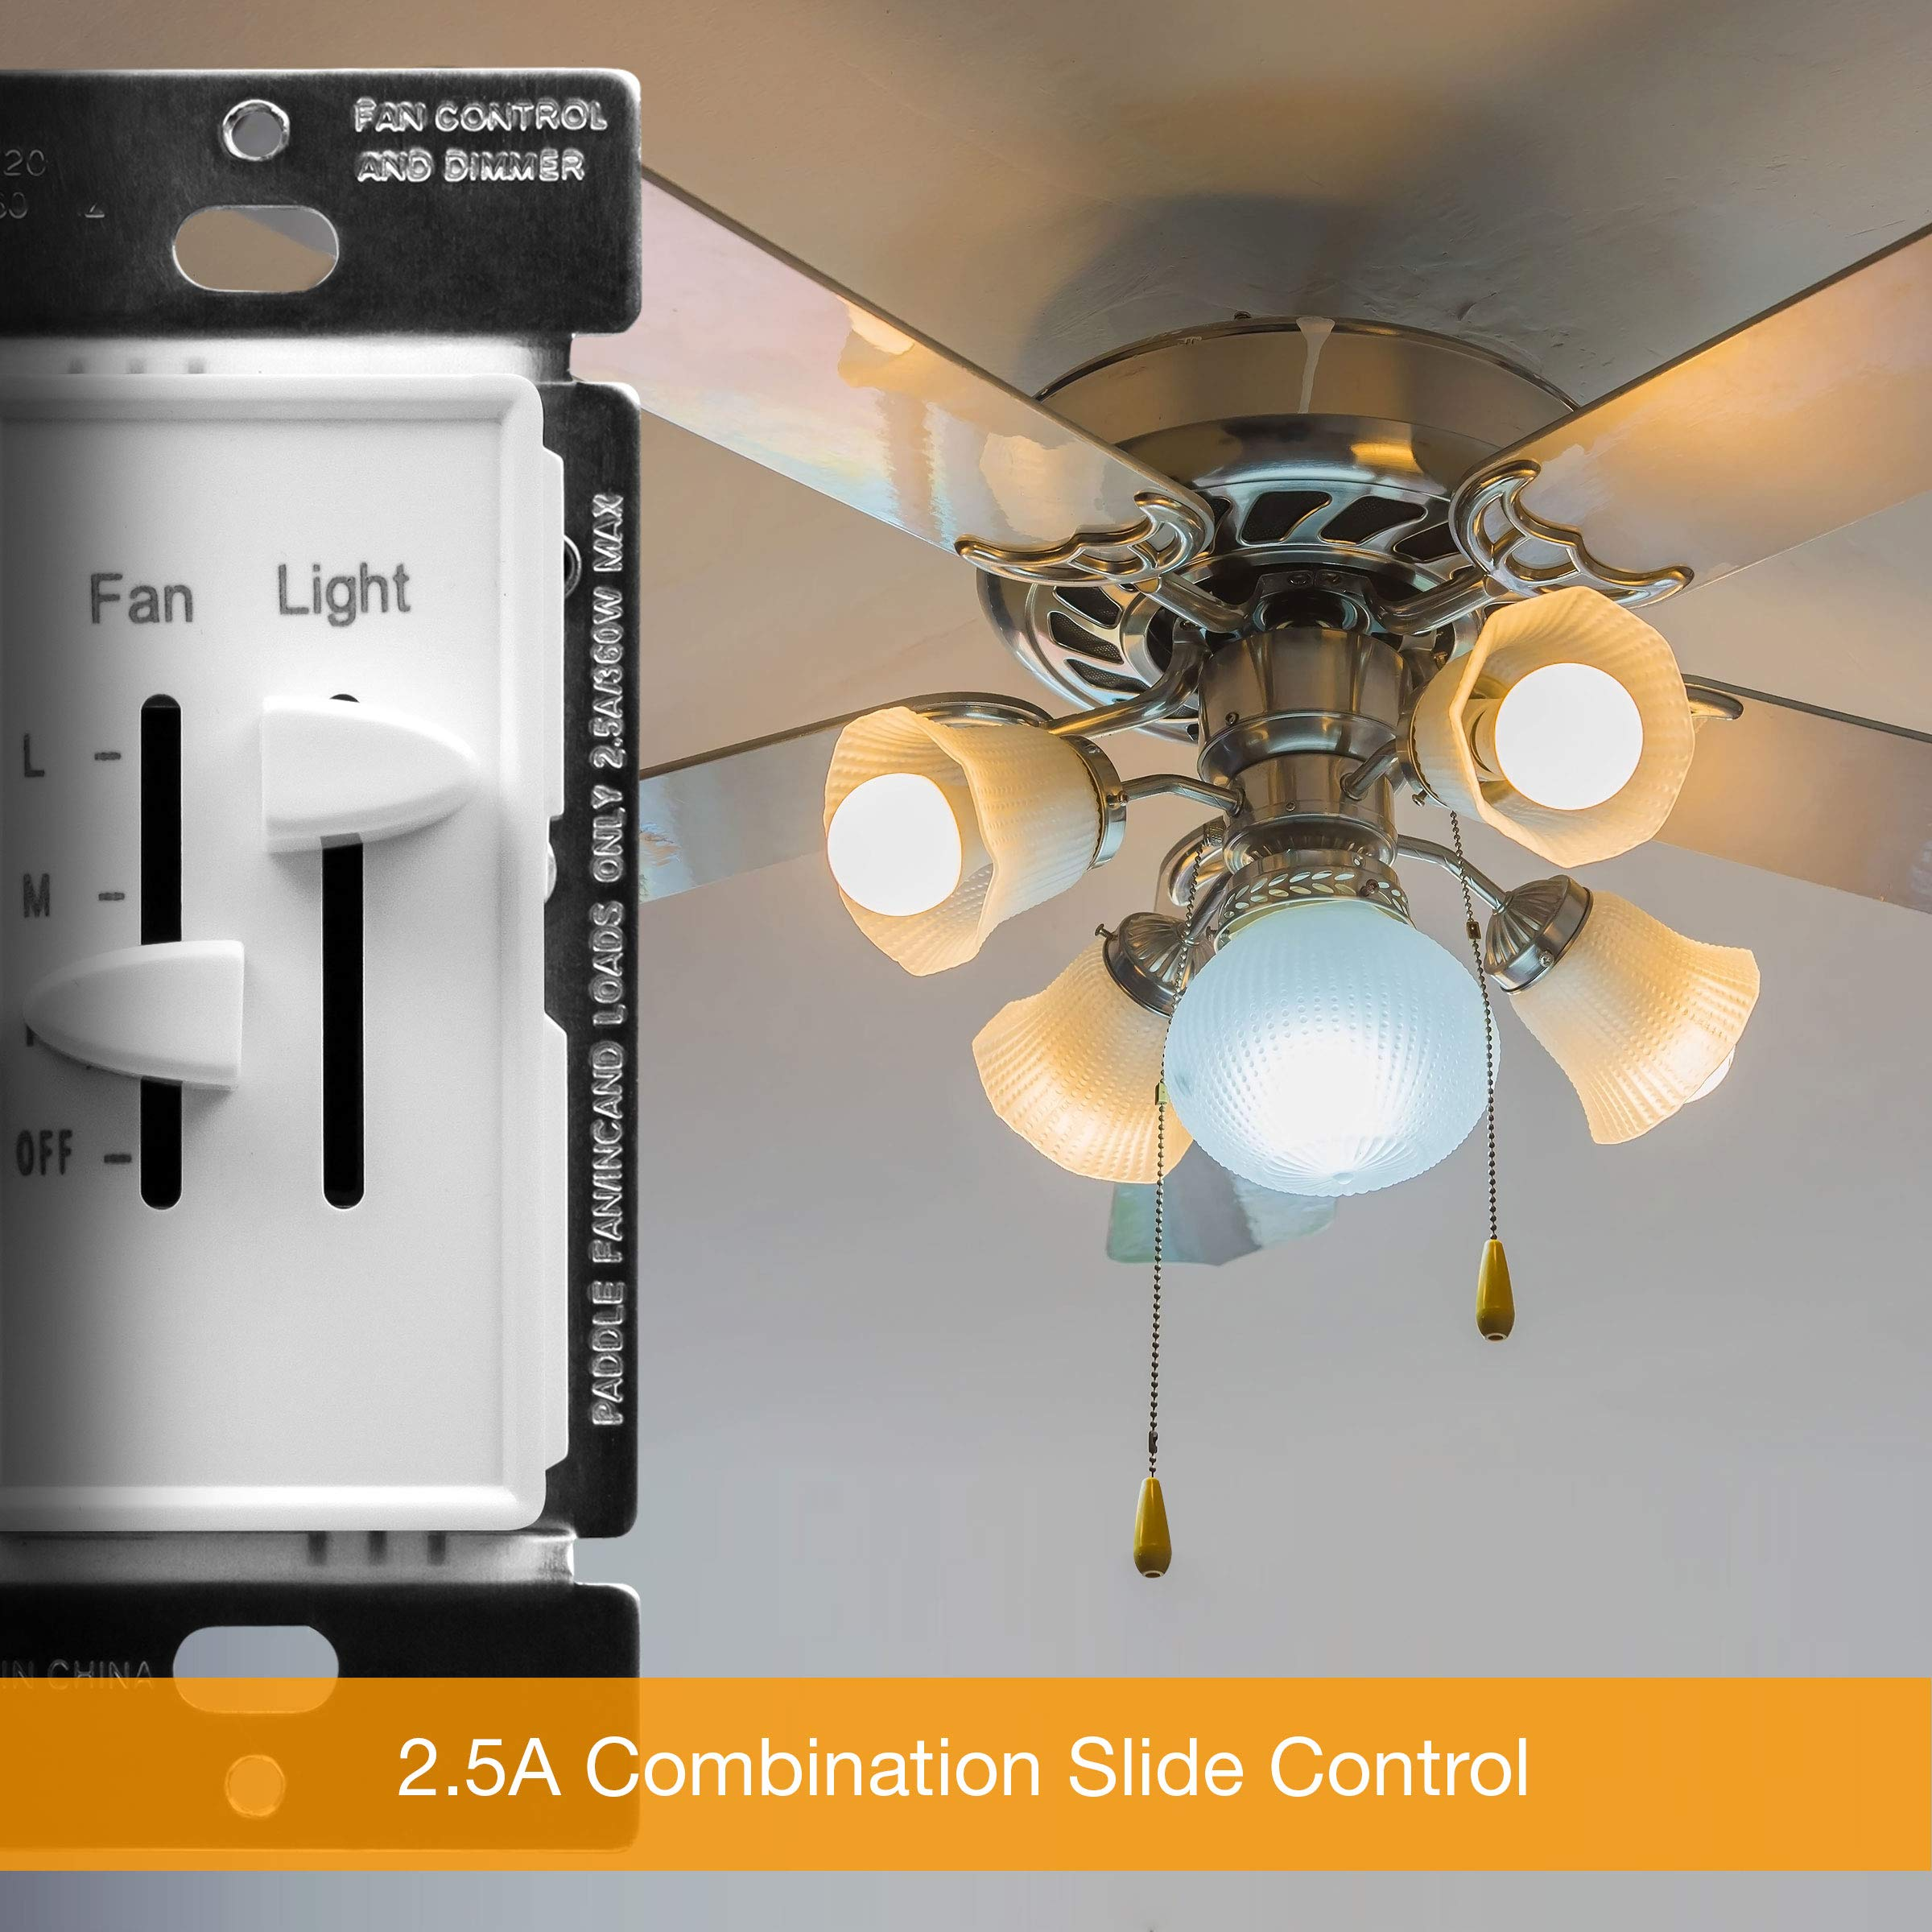 ENERLITES 3 Speed Ceiling Fan Control and LED Dimmer Light Switch, 2 5A  Single Pole Light Fan Switch, 300W Incandescent Load, No Neutral Wire